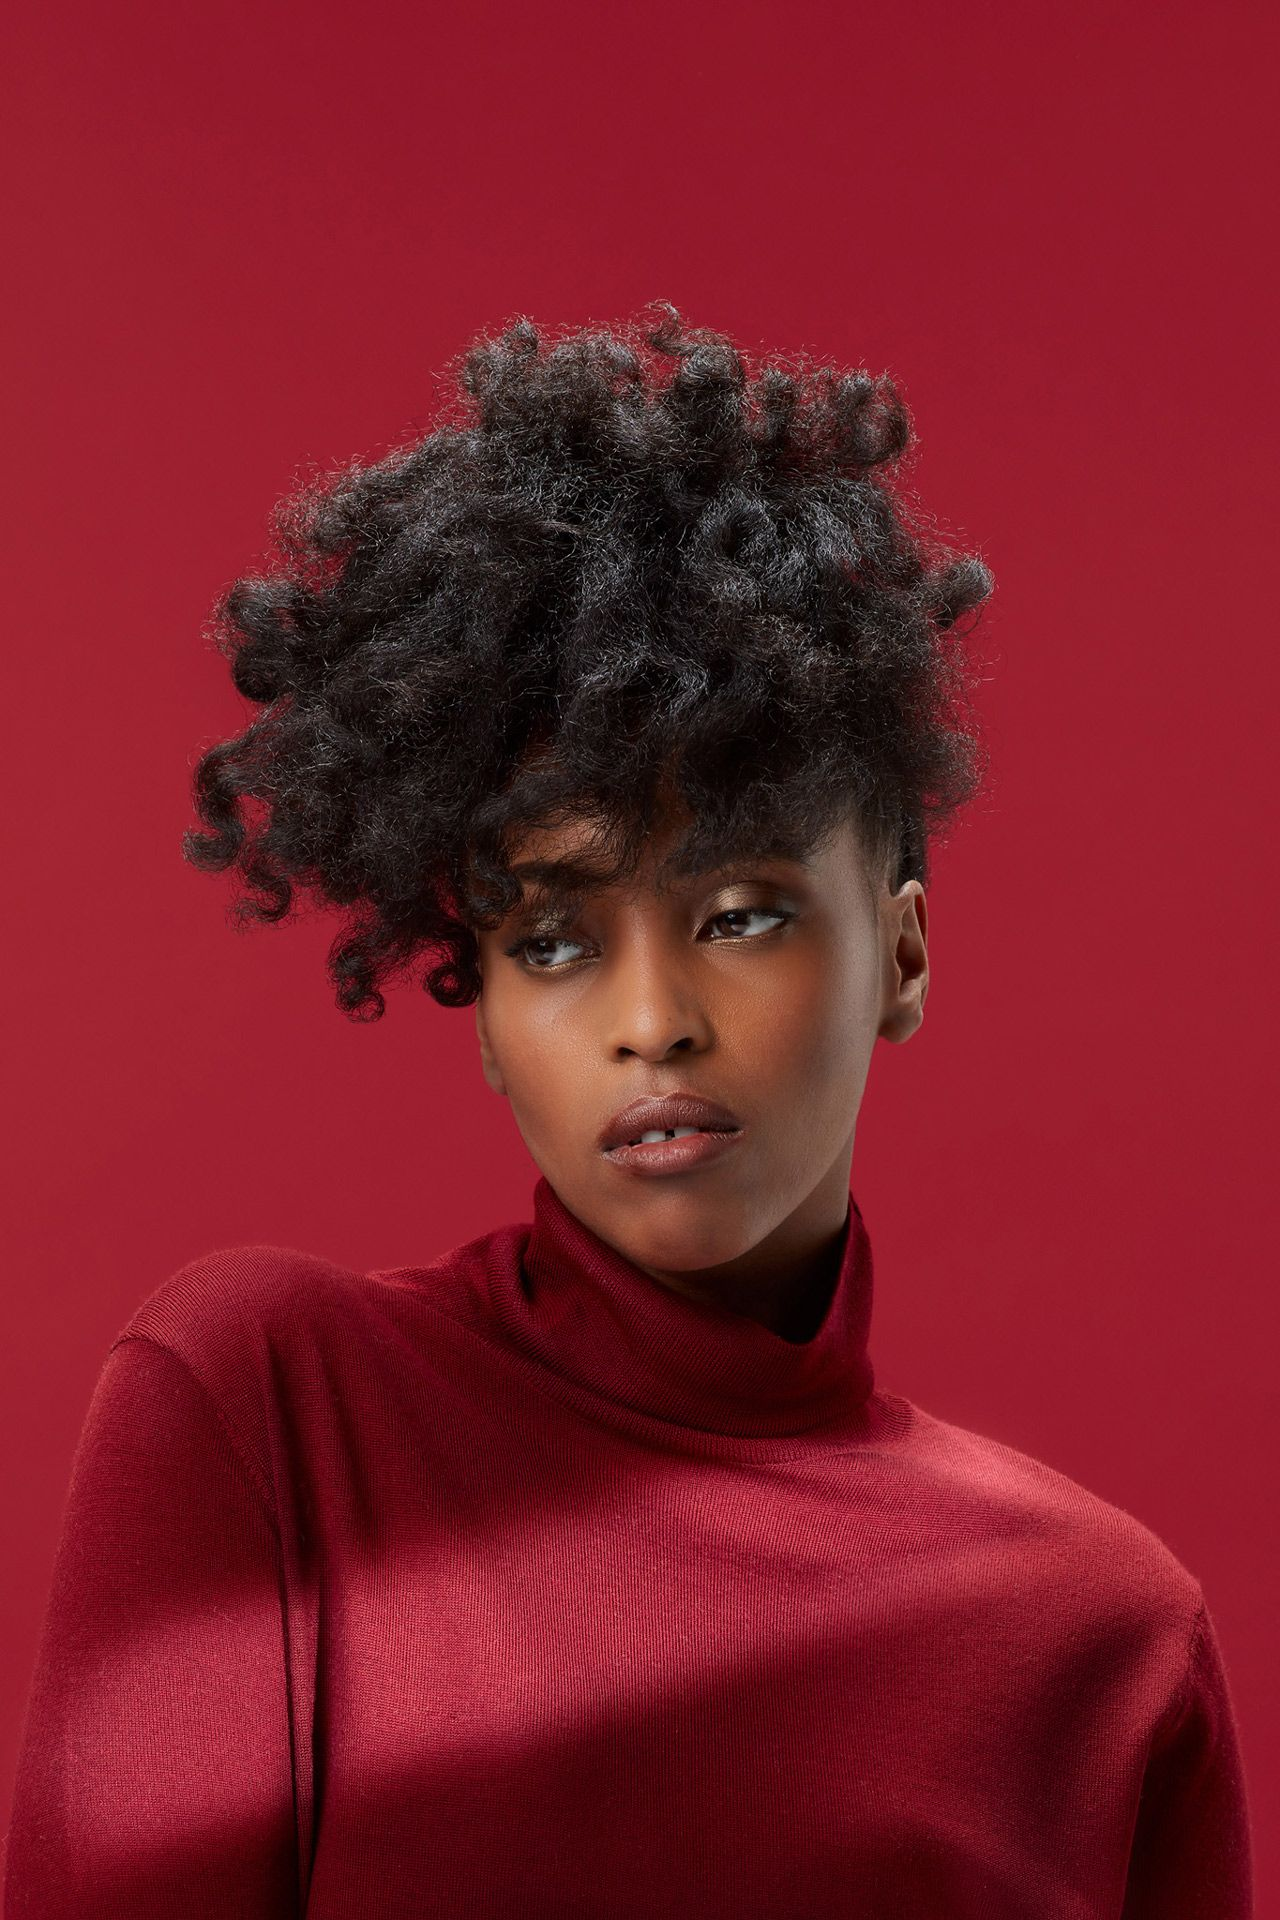 portrait of black woman looking down wearing red turtleneck on red background by Simon Duhamel for creative project Light & Colours